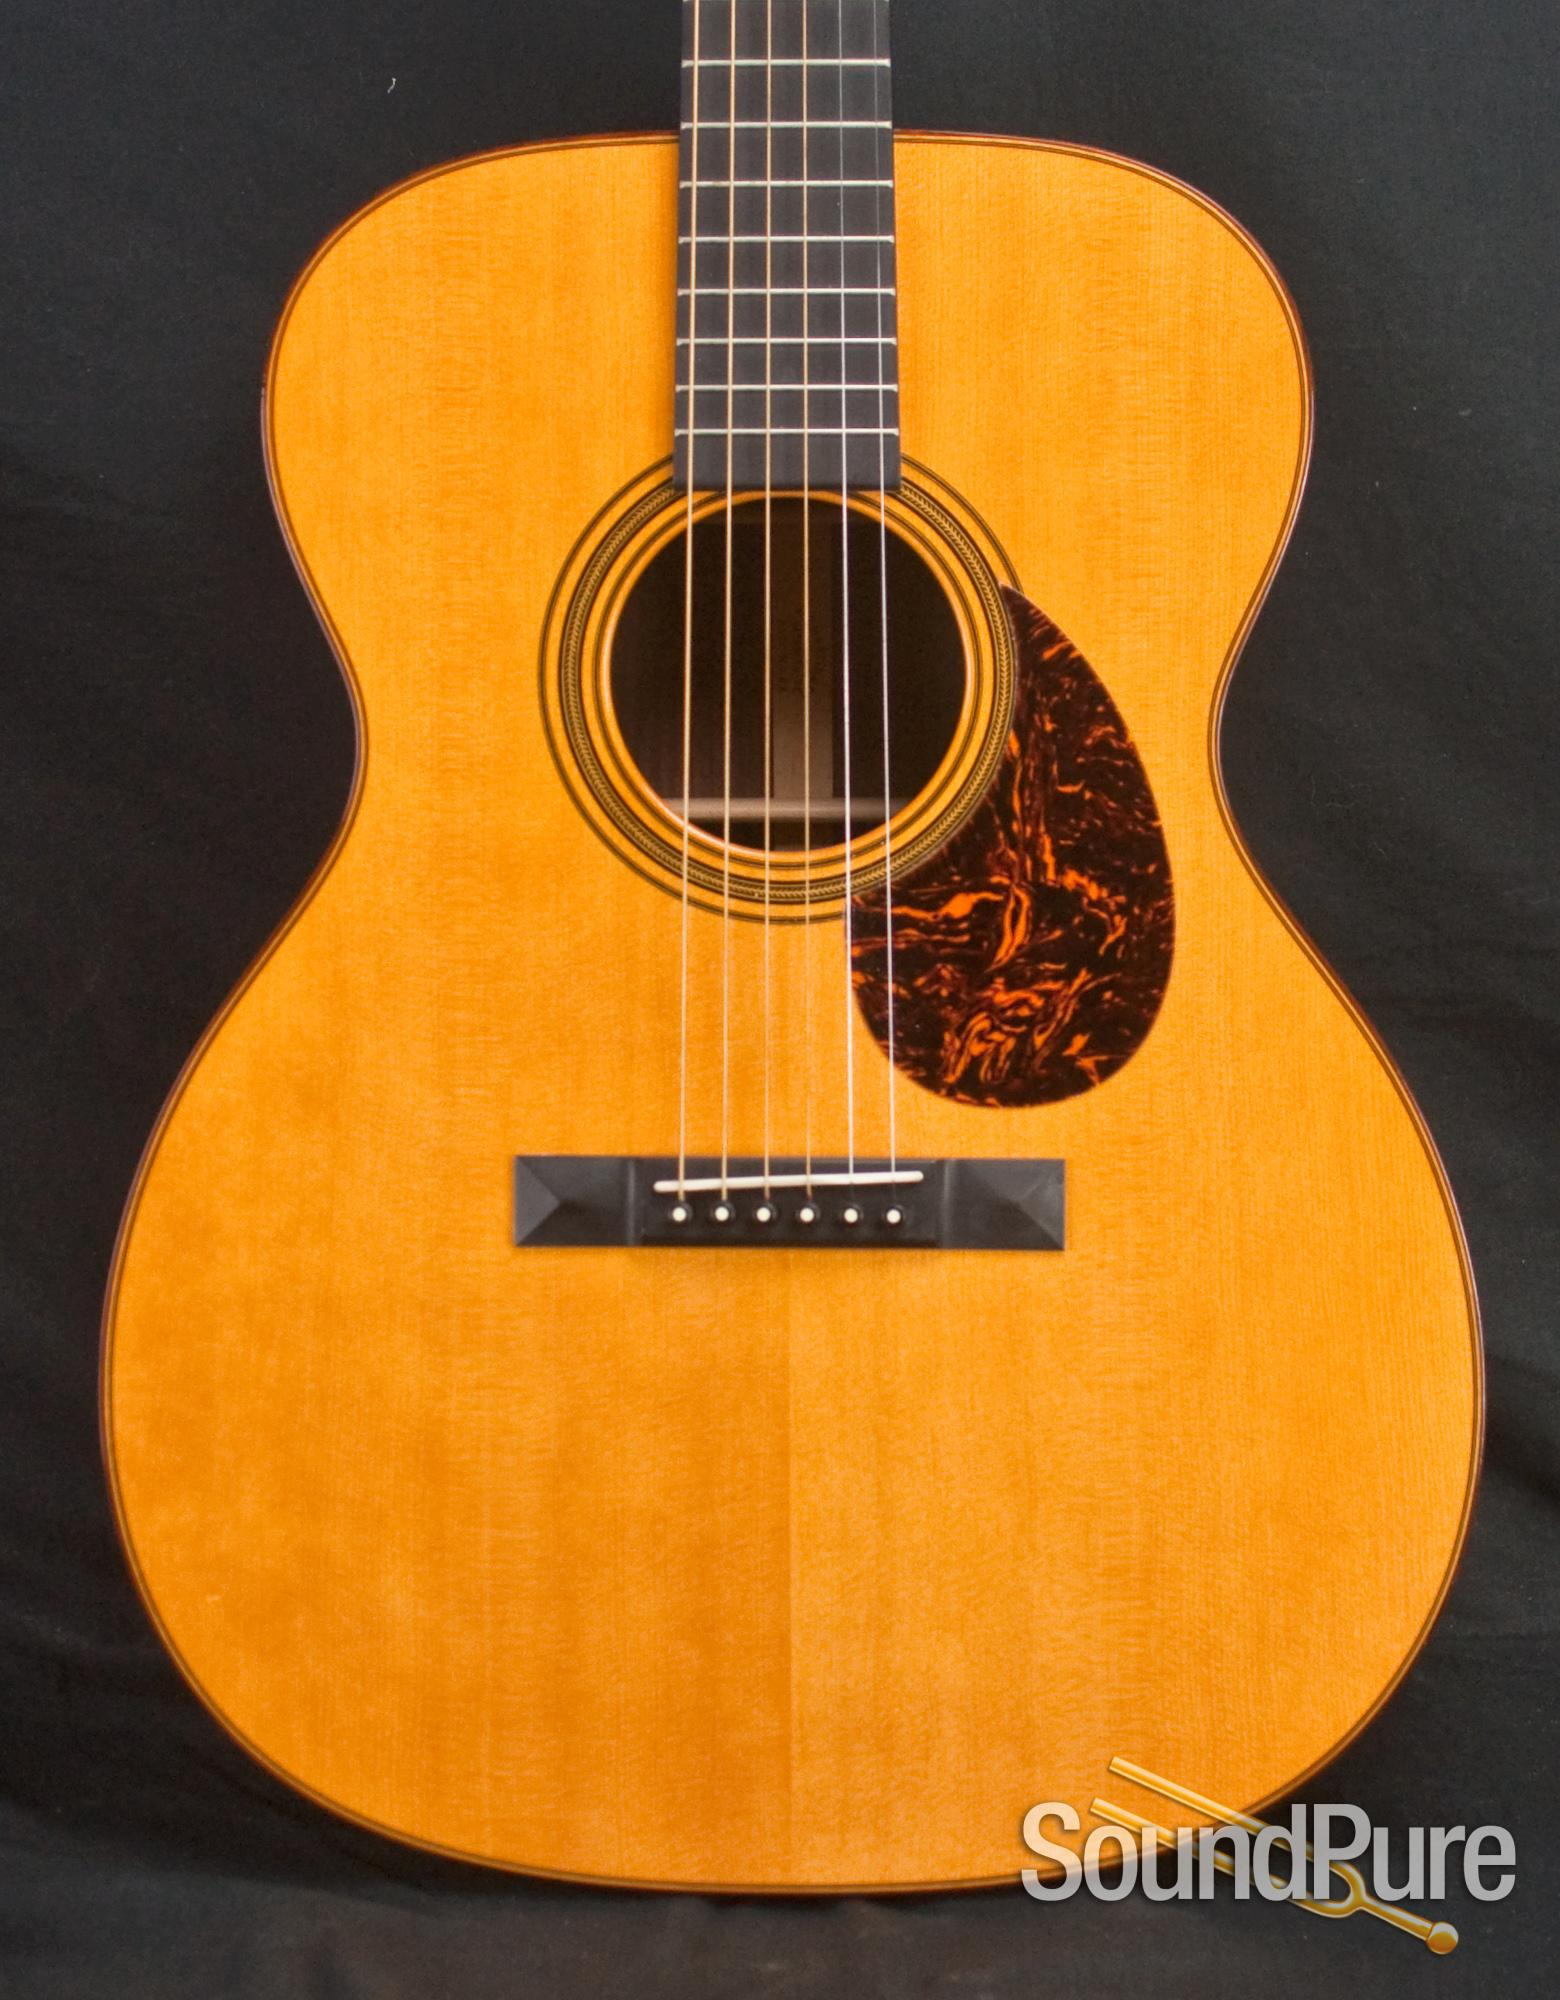 Projet guitare Cheval - Page 5 ProductImage?id=11338-martin-om-21-special-acoustic-guitar-used-14ae43d5b7e-5a